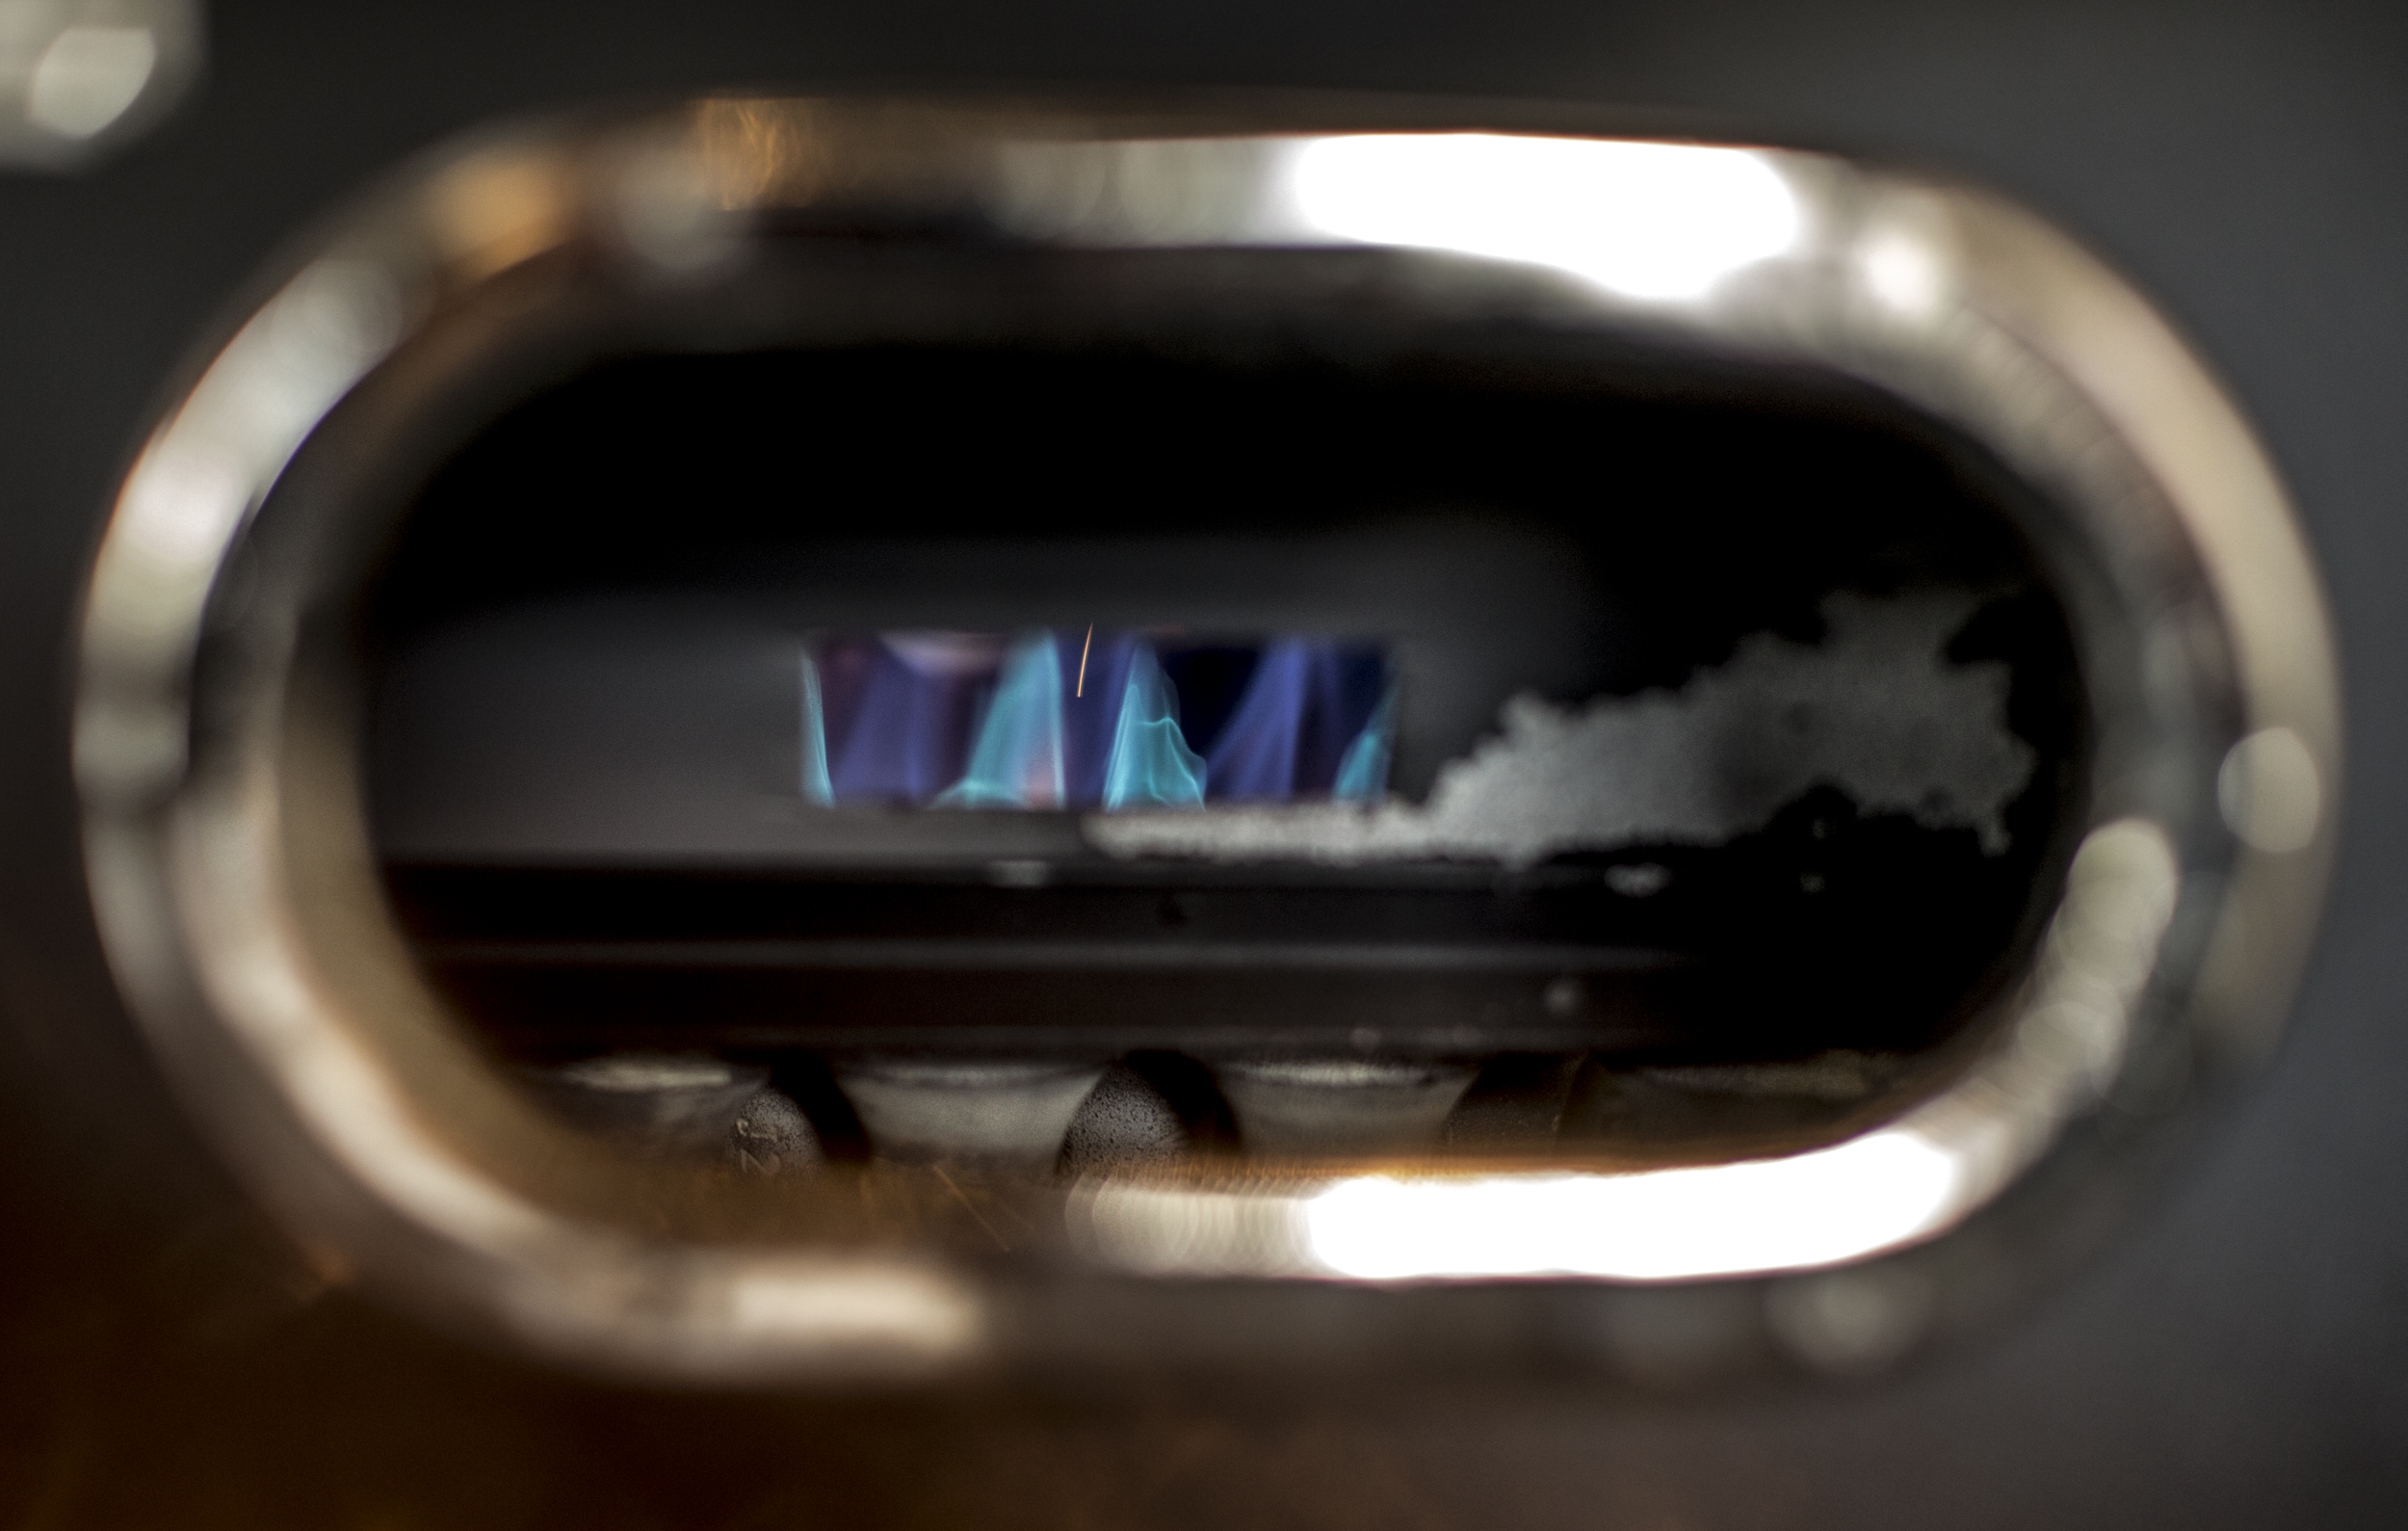 Check out that blue/purple flame from the roaster. So sick.